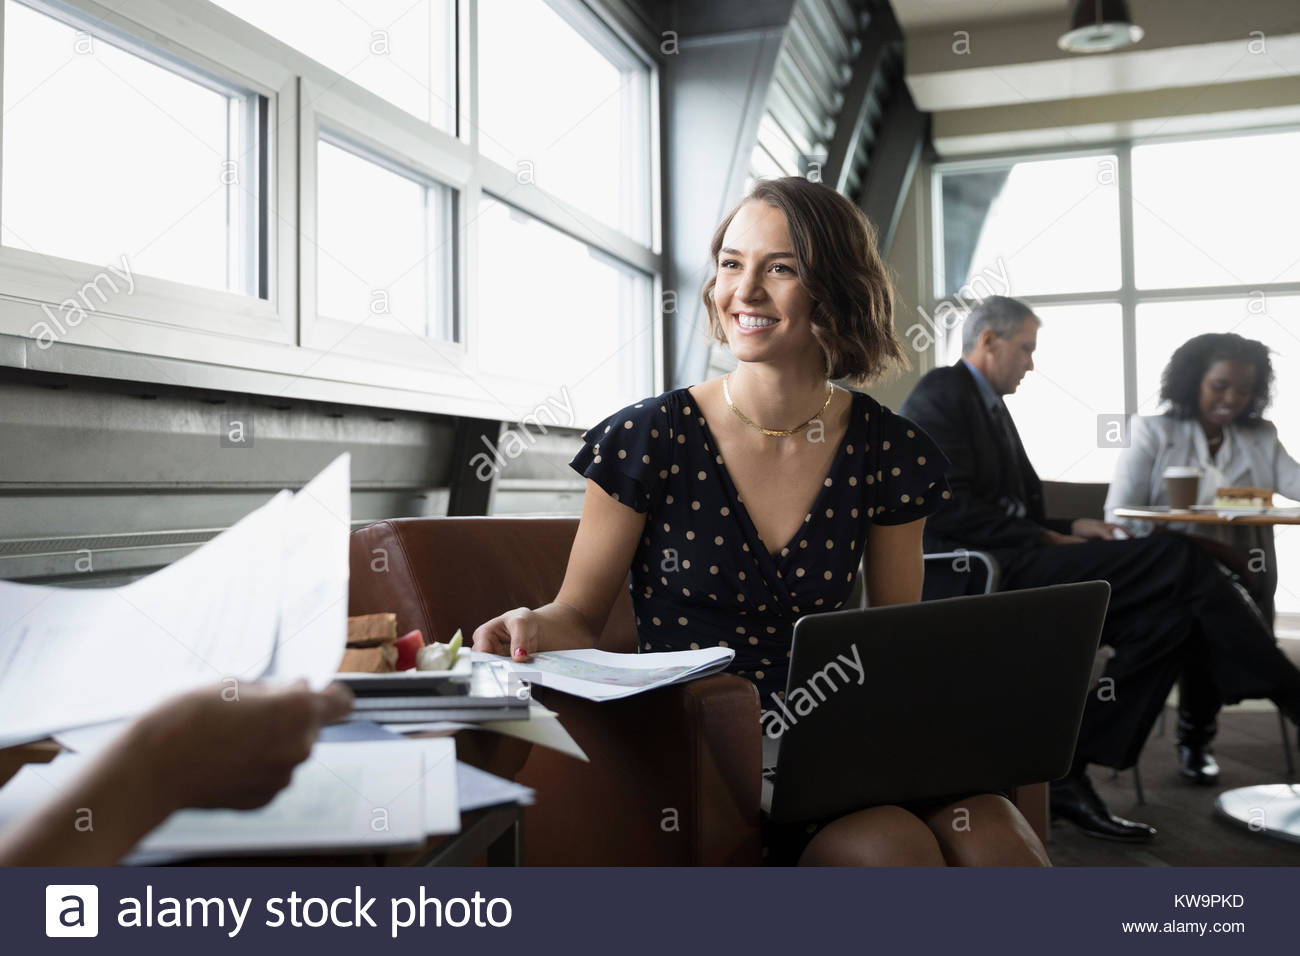 Smiling,confident businesswoman with paperwork using laptop in business lounge Photo Stock